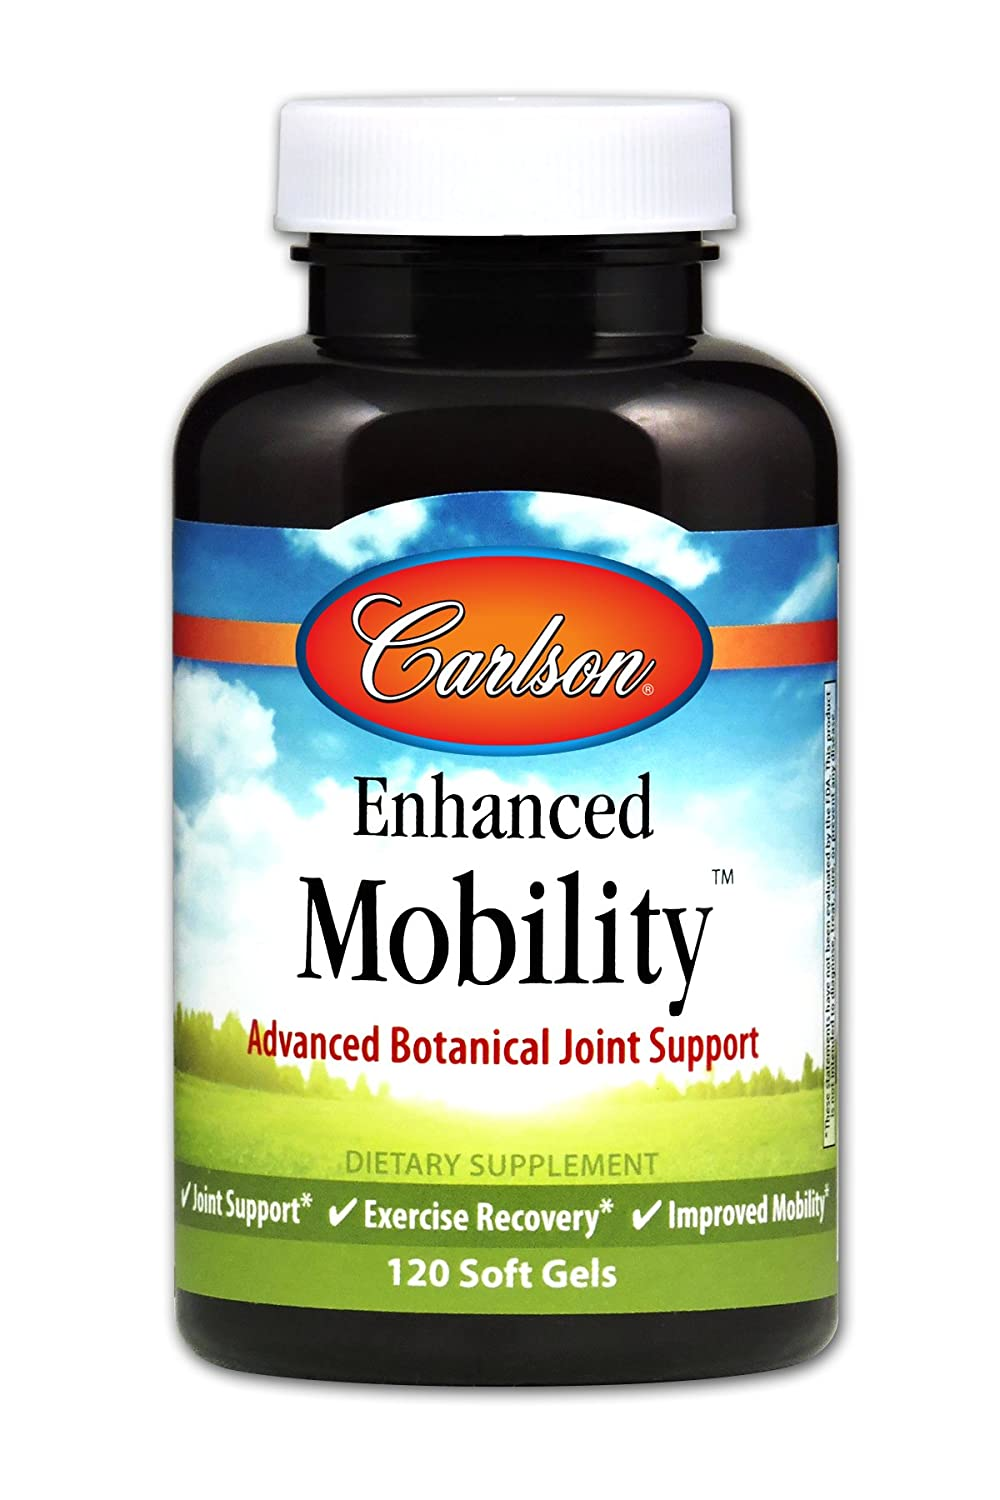 Carlson – Enhanced Mobility, Advanced Botanical Joint Support, Joint Support, Exercise Recovery Improved Mobility, 120 Soft gels